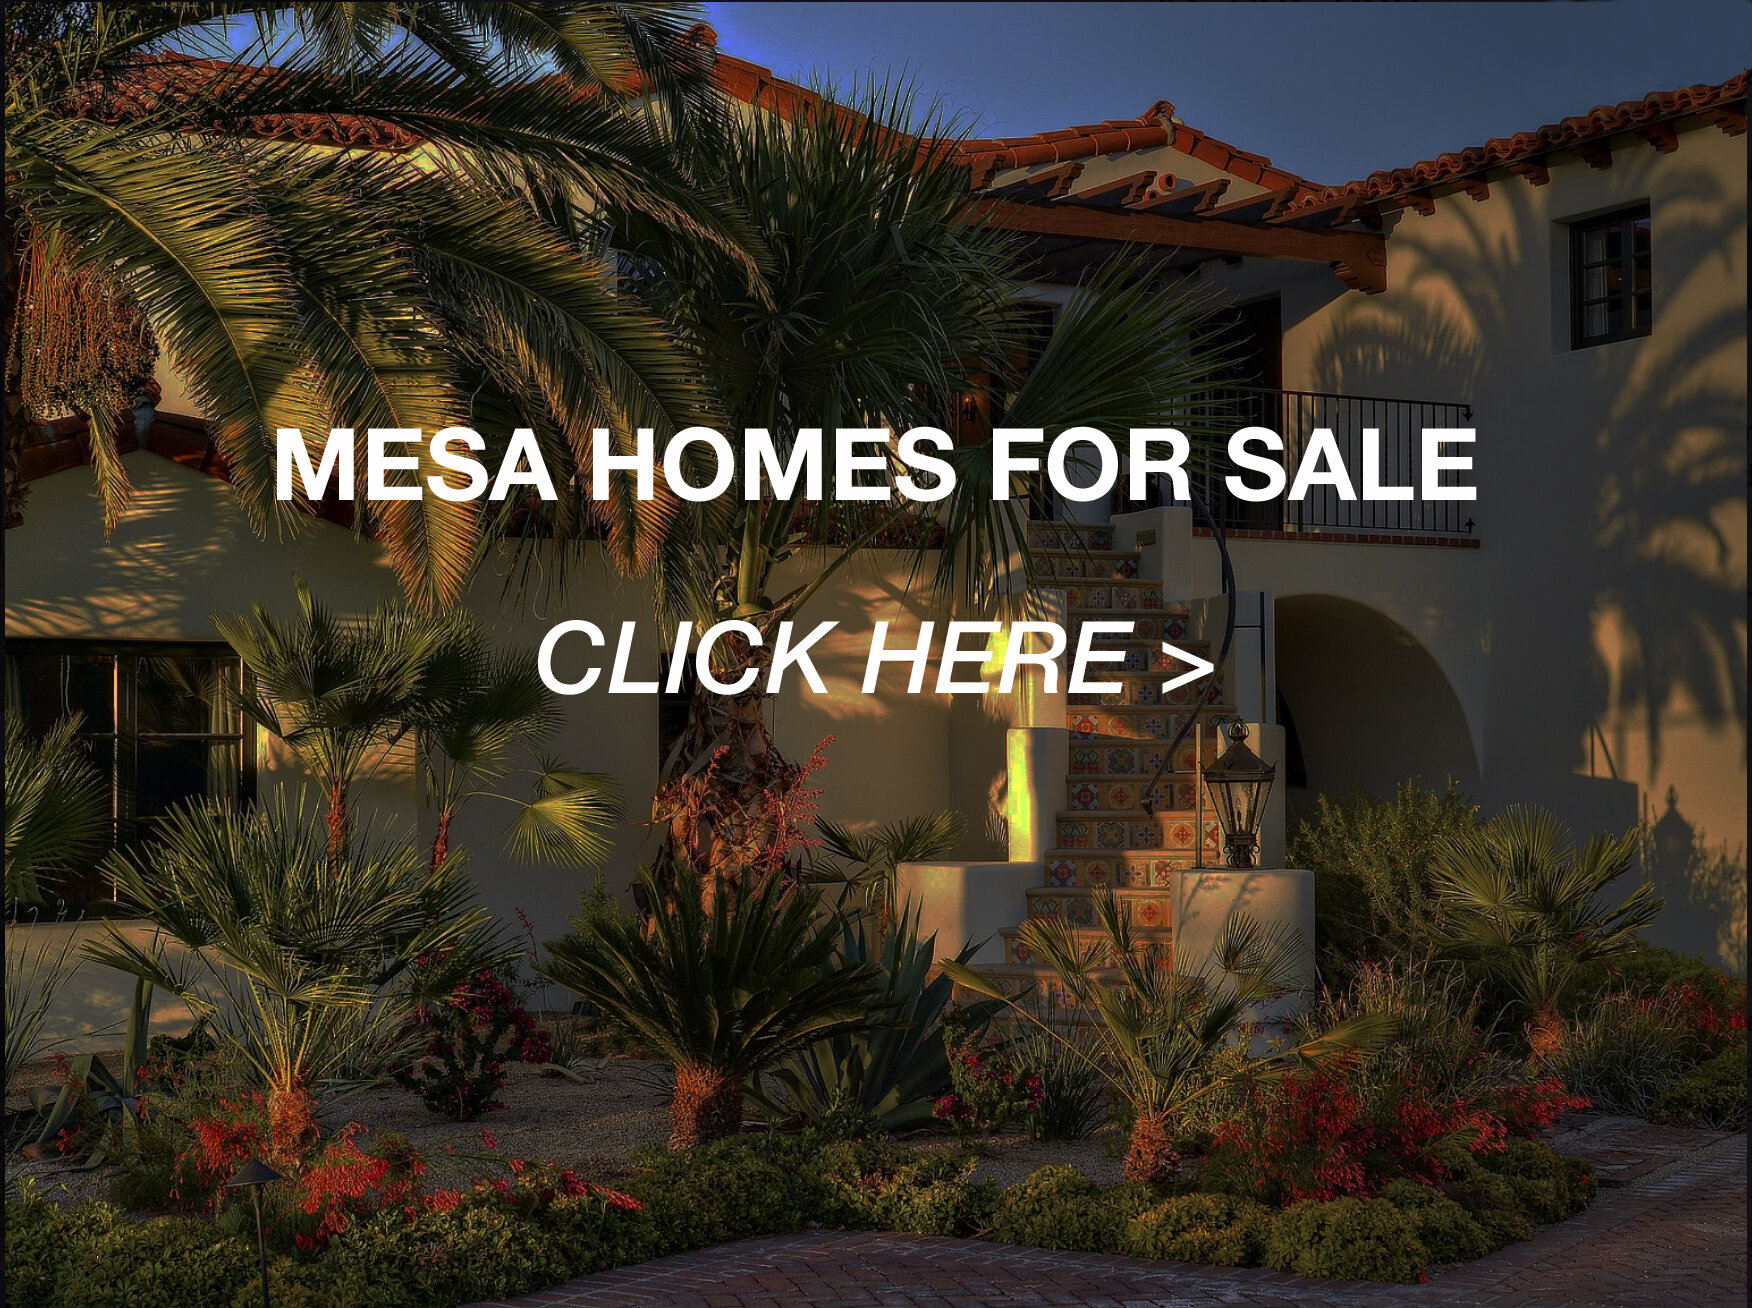 HOMES FOR SALE IN MESA AZ